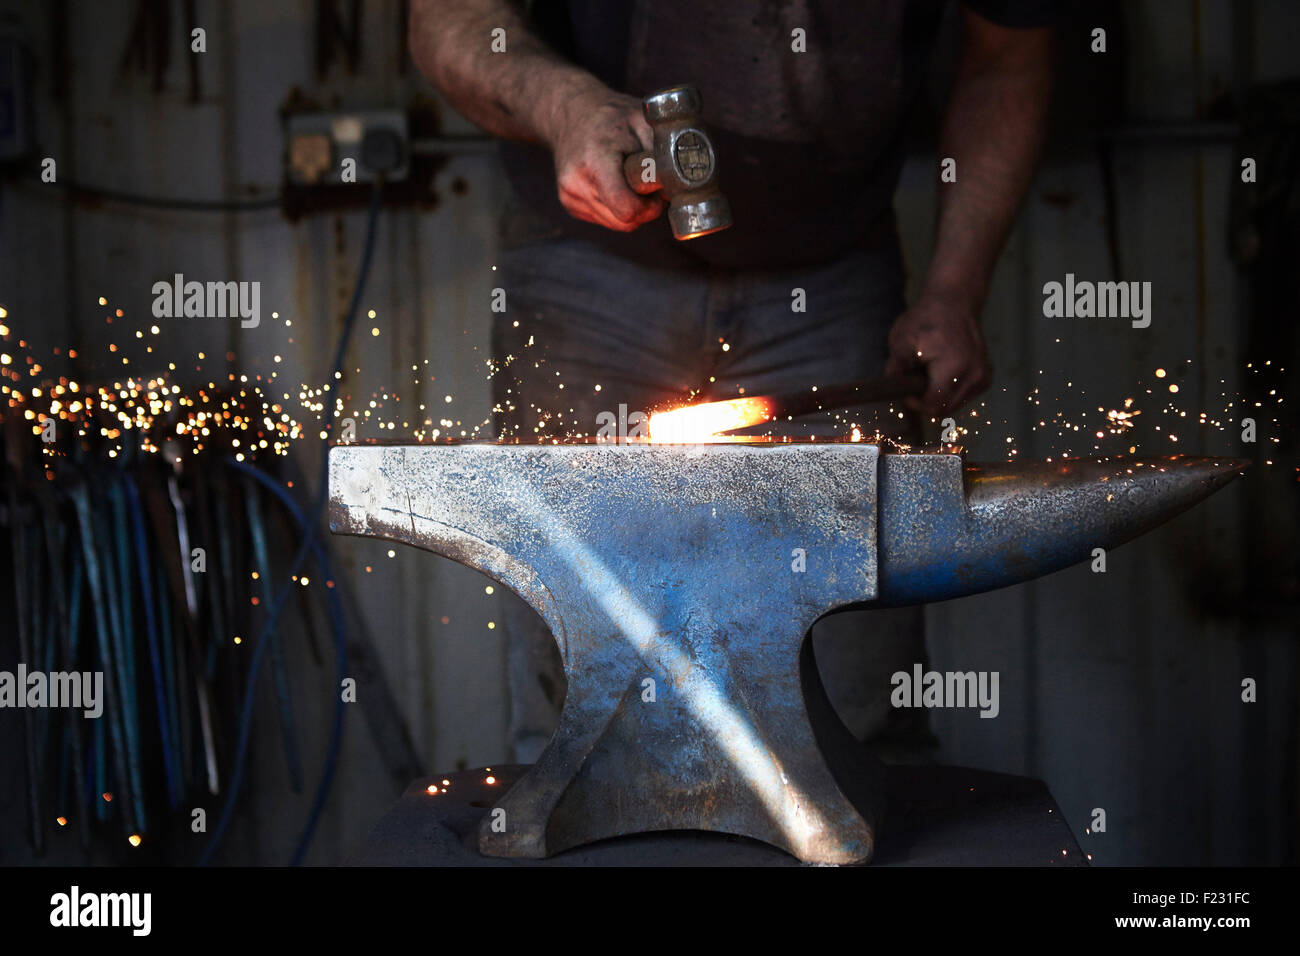 A blacksmith shaping a hot piece of iron on an anvil with a hammer, with sparks flying. - Stock Image